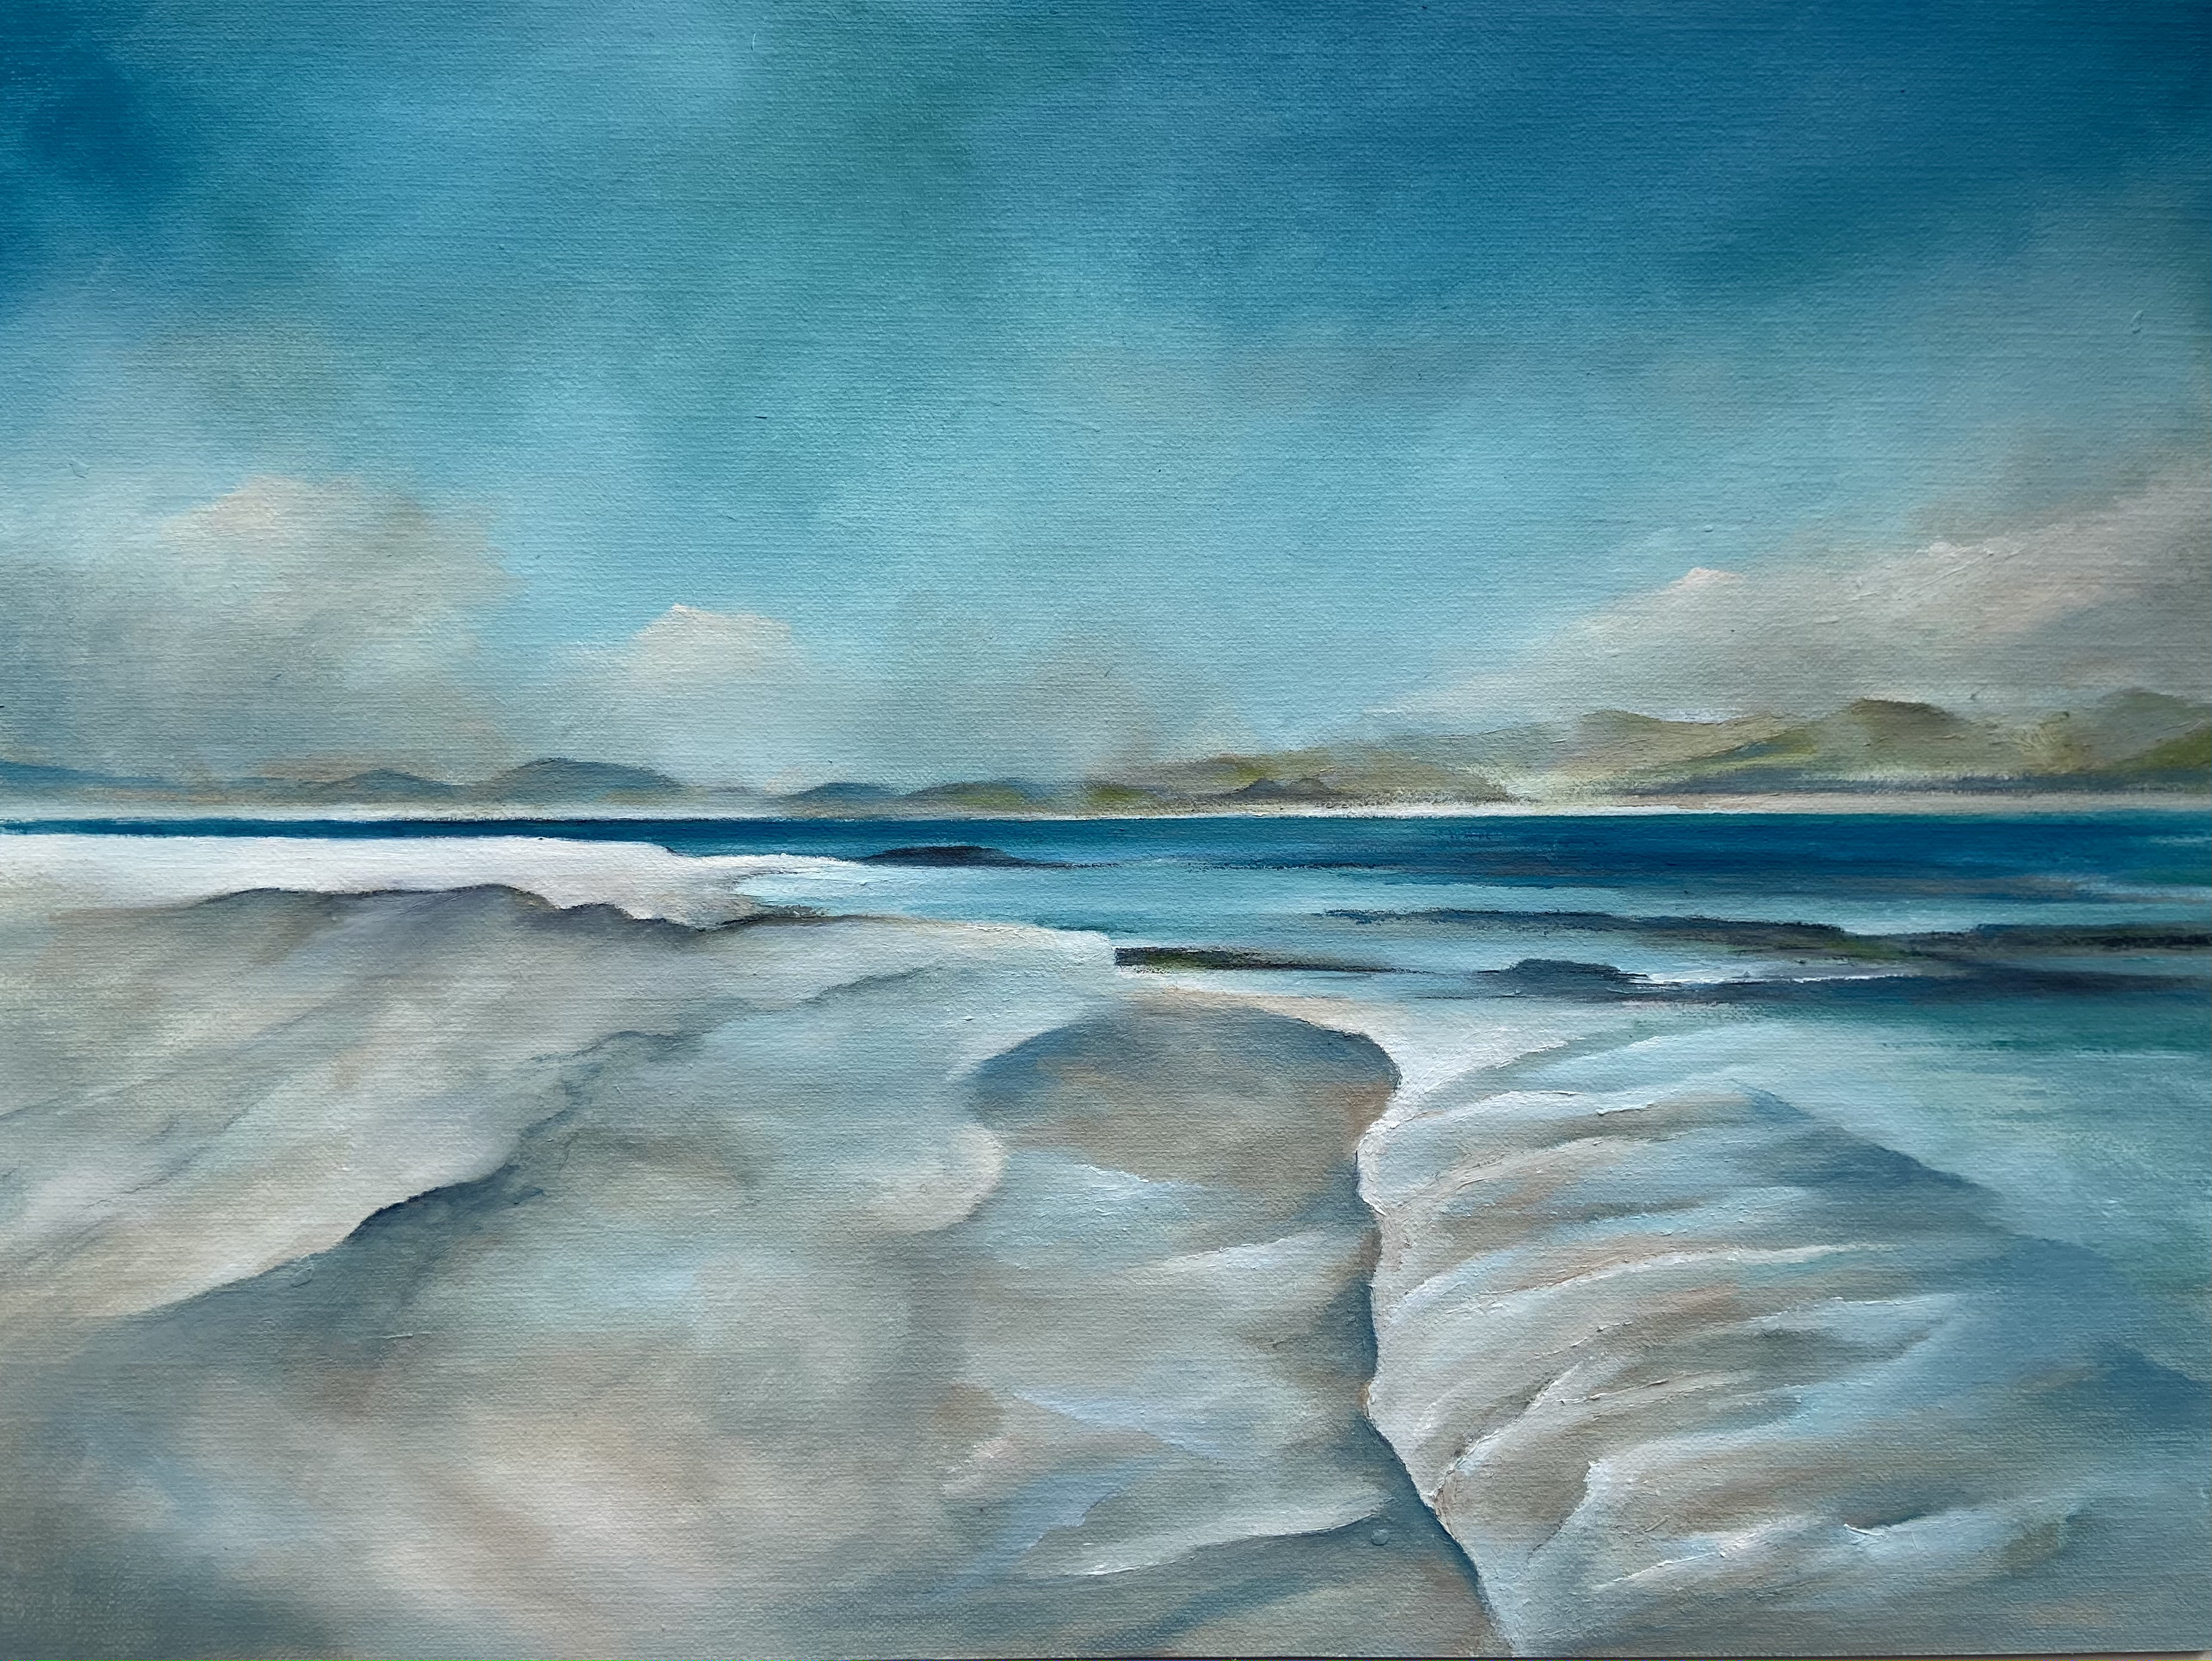 Incoming Tide - Eoligarry, Isle of Barra